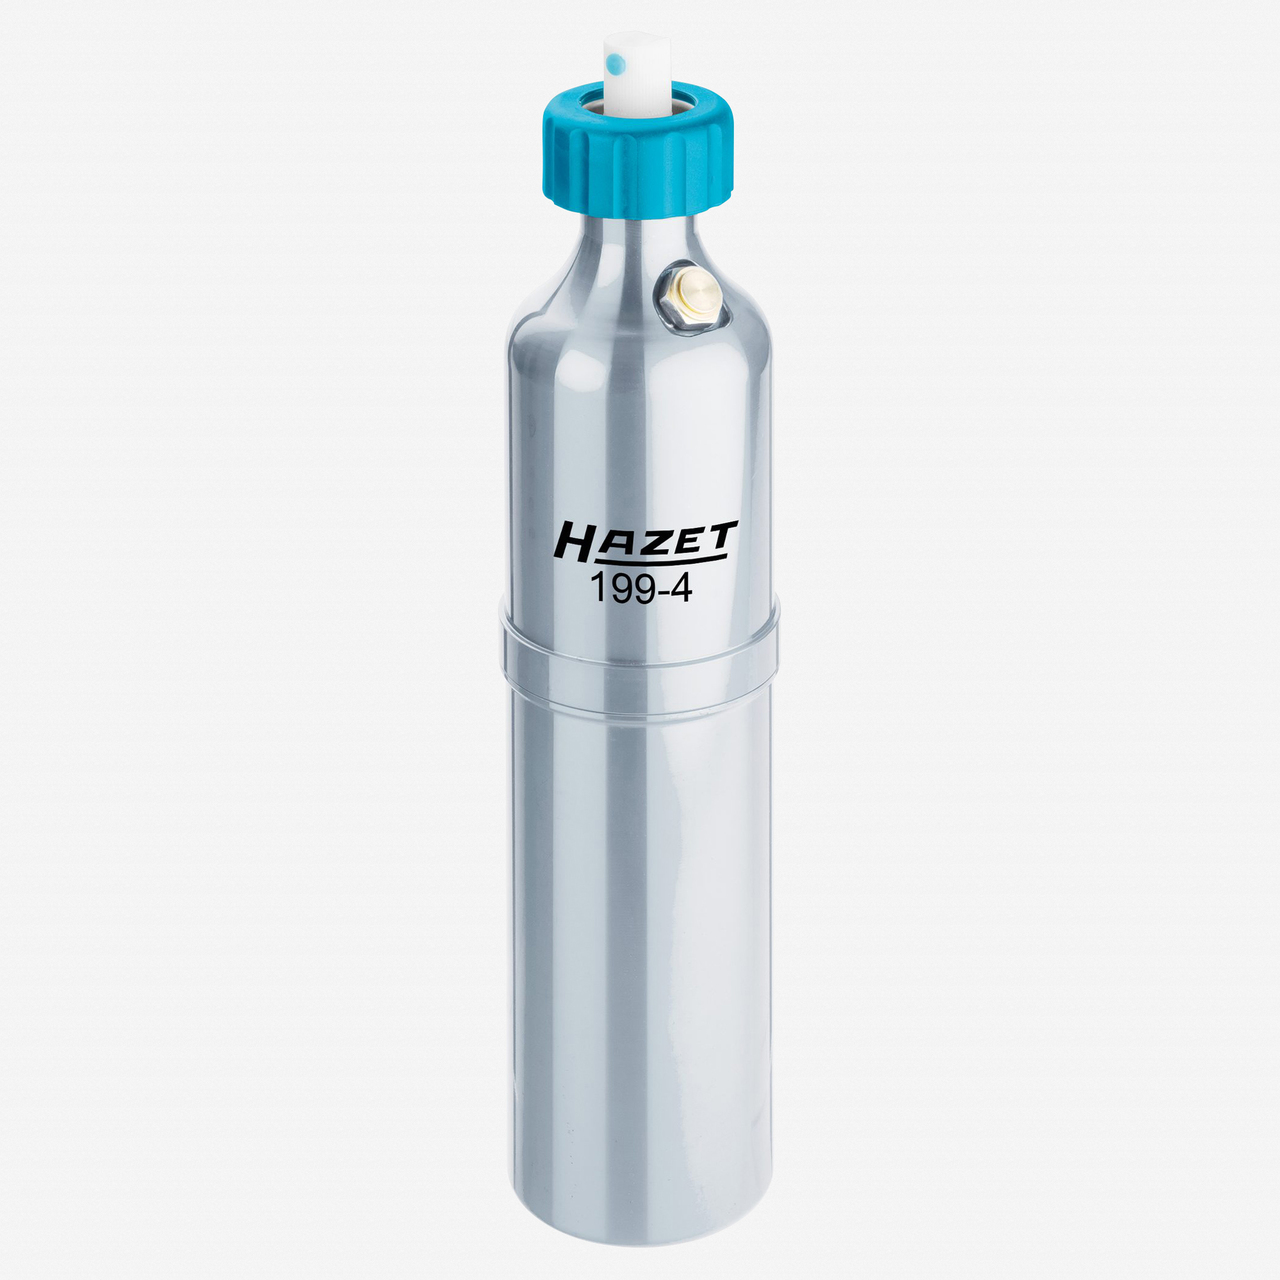 Hazet 199-4 Spray bottle, refillable  - KC Tool